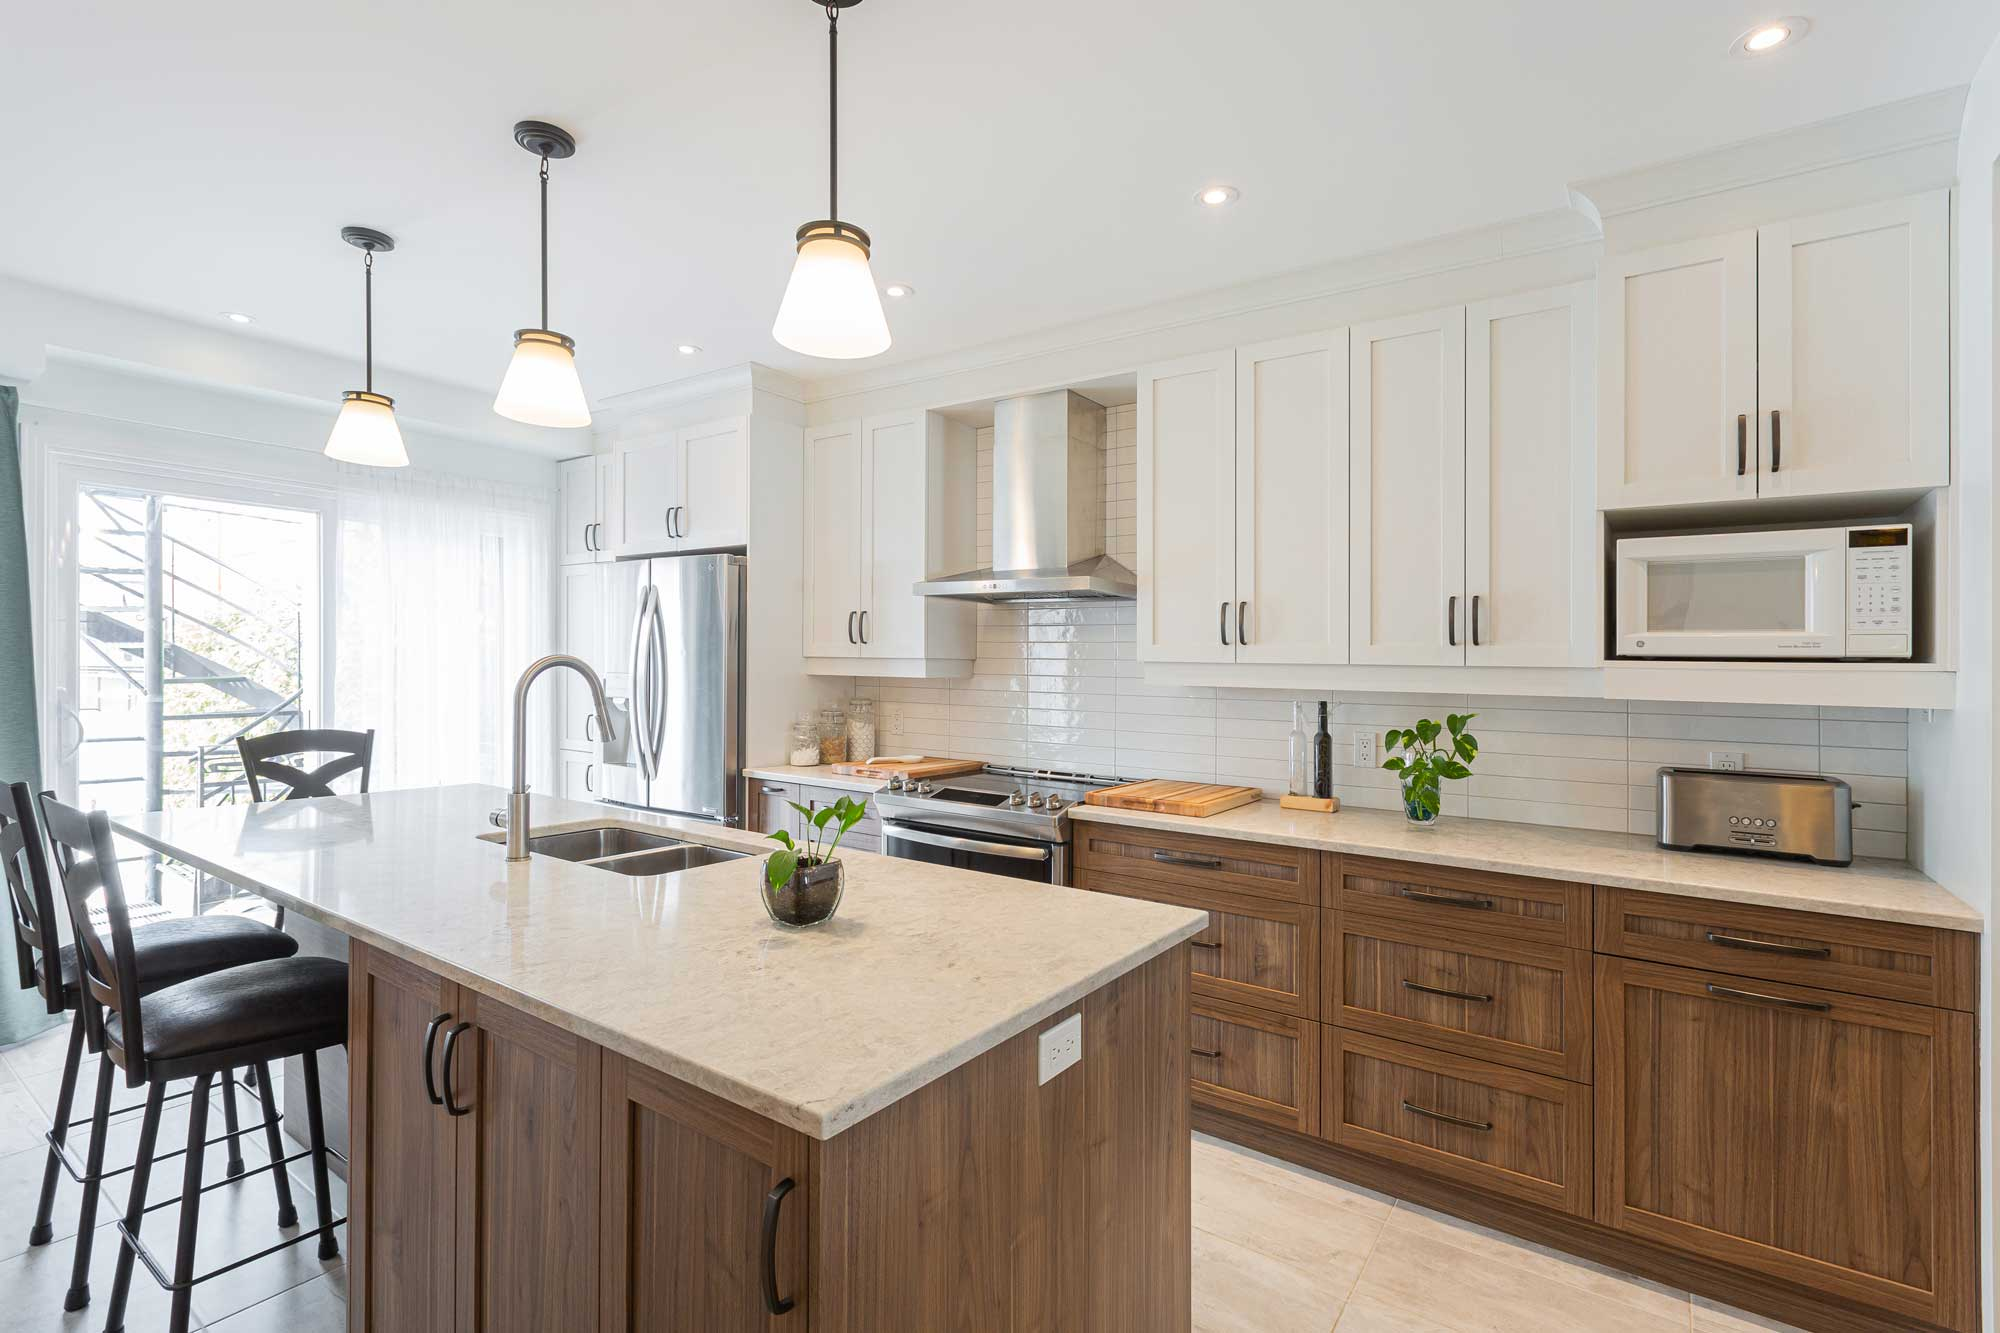 modern kitchen with white and wood custom cabinets